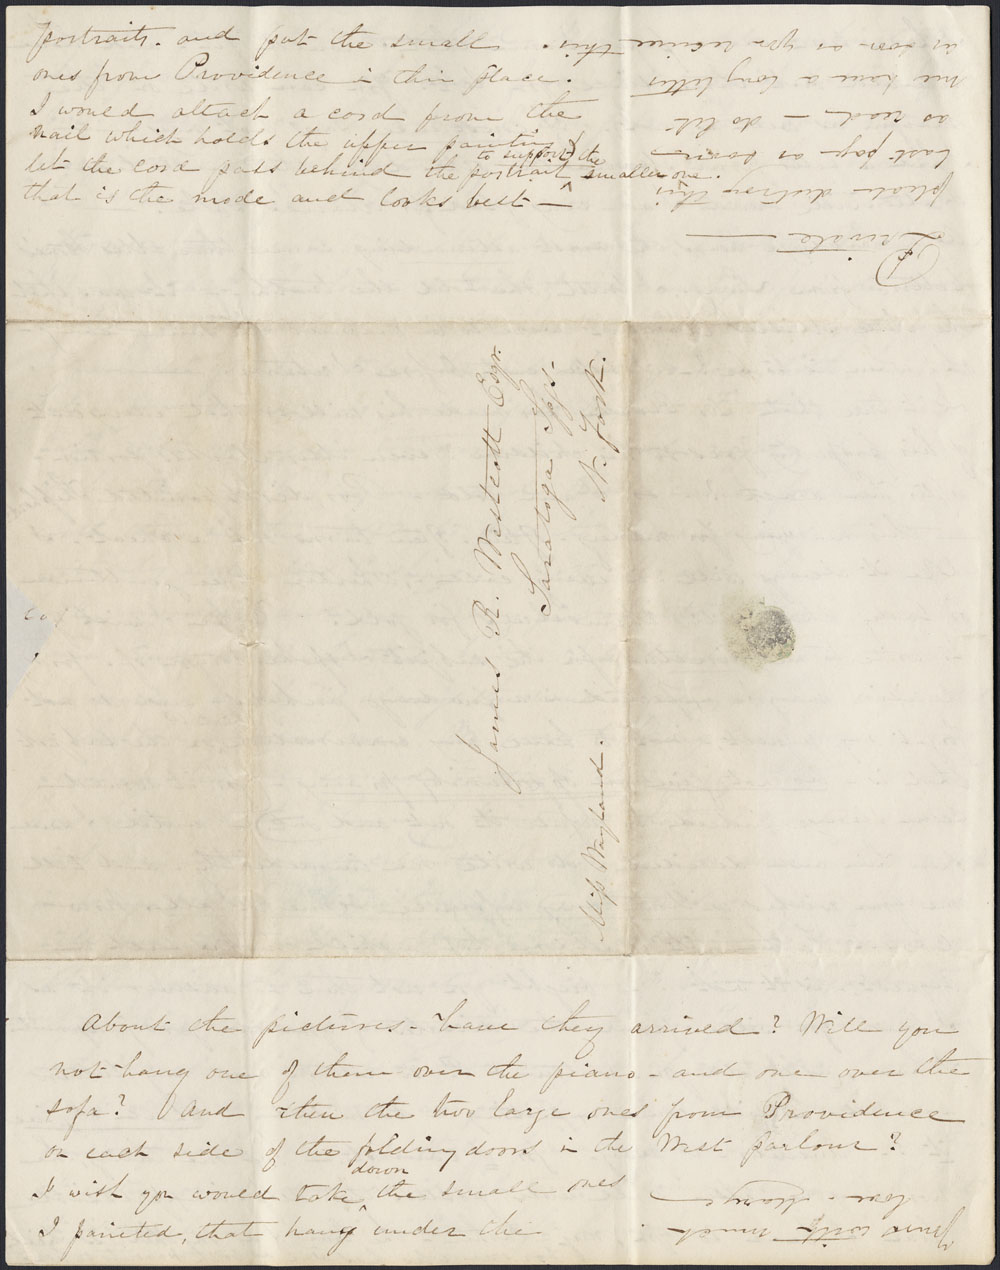 [Correspondence of Mary Westcott] 1845. (item 4)